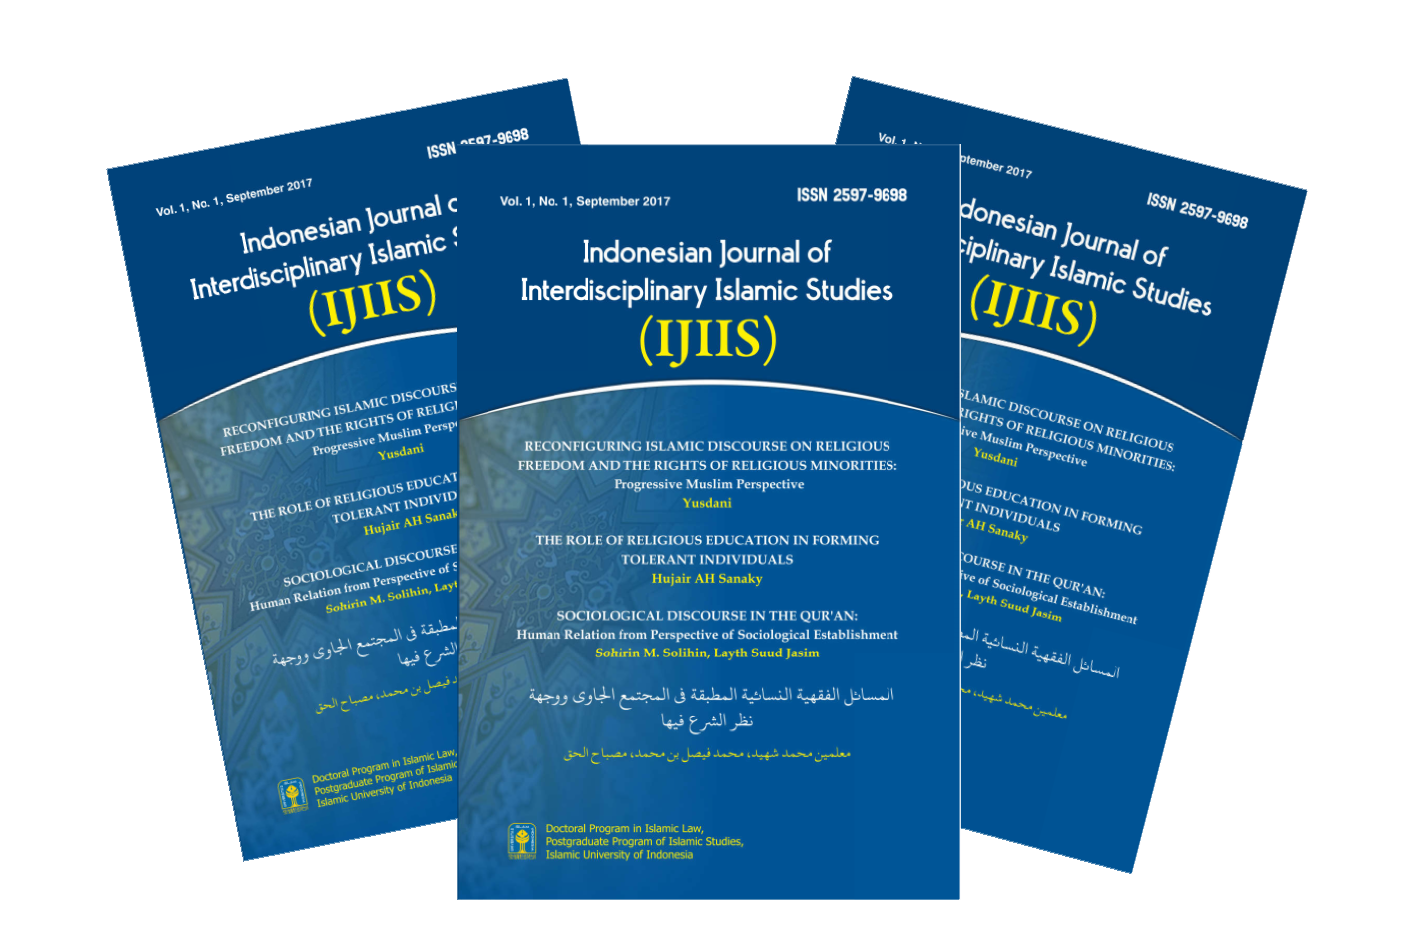 INDONESIAN JOURNAL OF INTERDISCIPLINARY ISLAMIC STUDIES